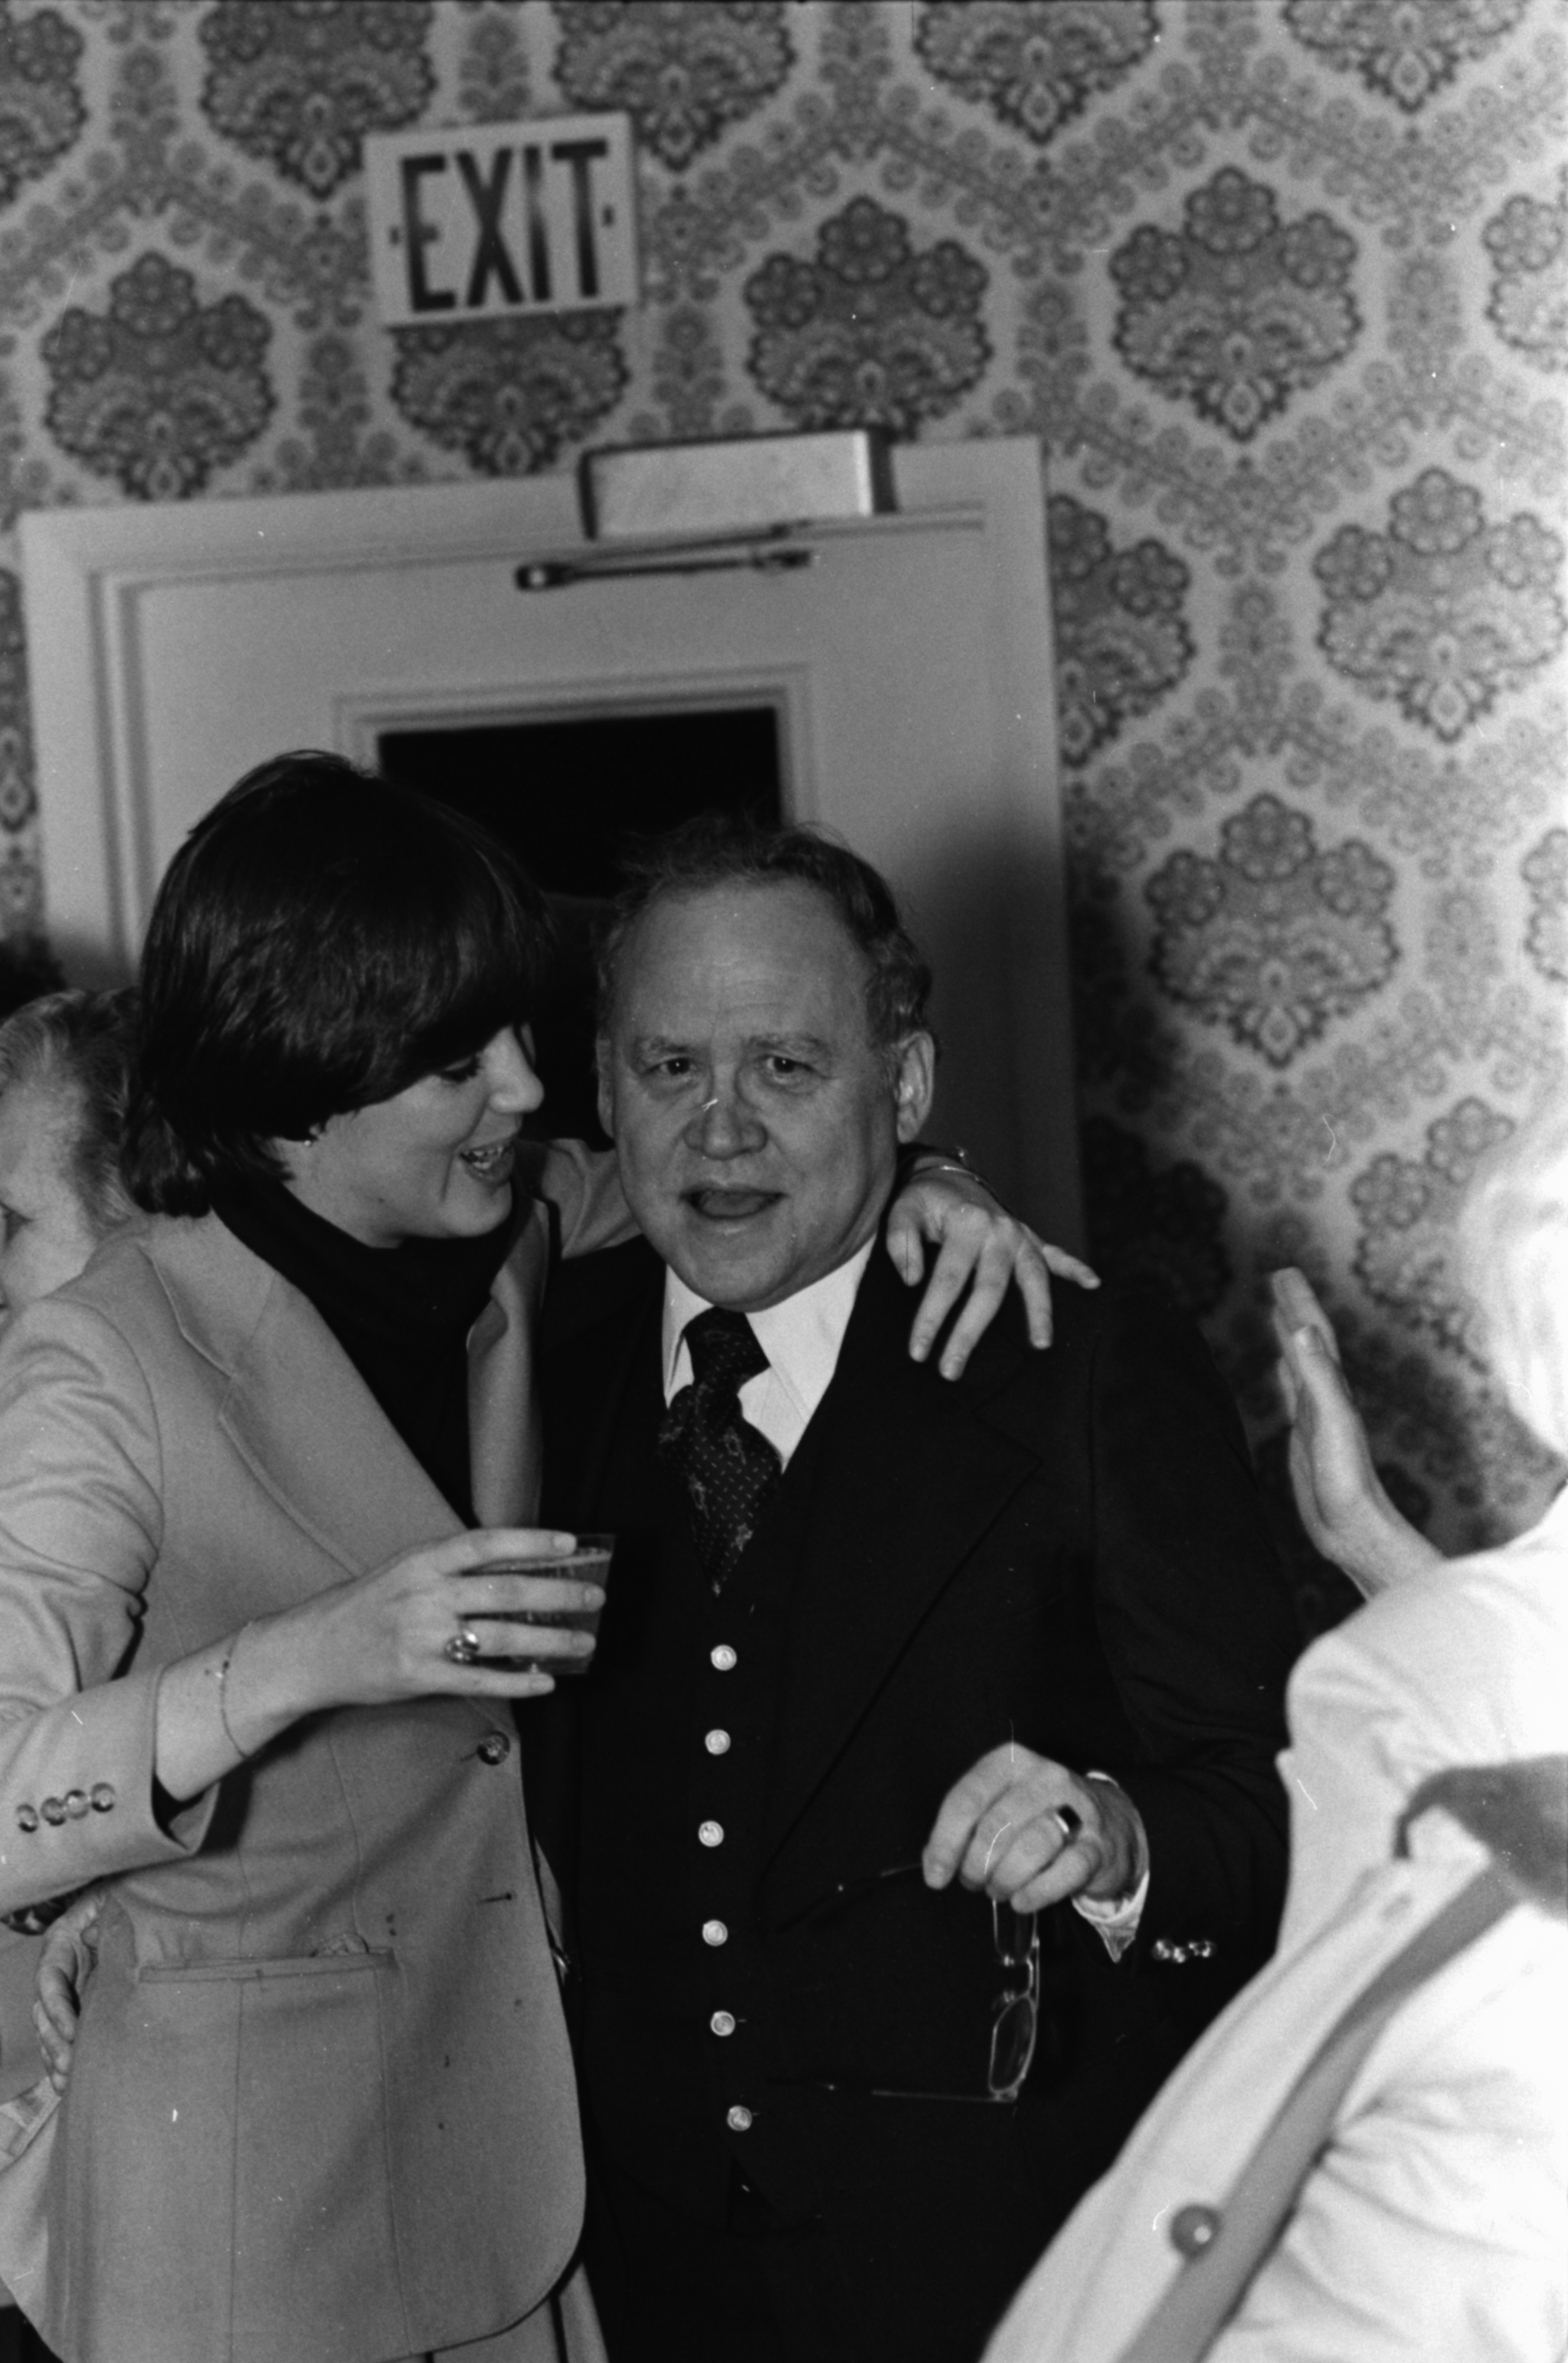 Walter S. Metzger at a surprise party in celebration of the 50th-anniversary of his family's business, December 1978 image